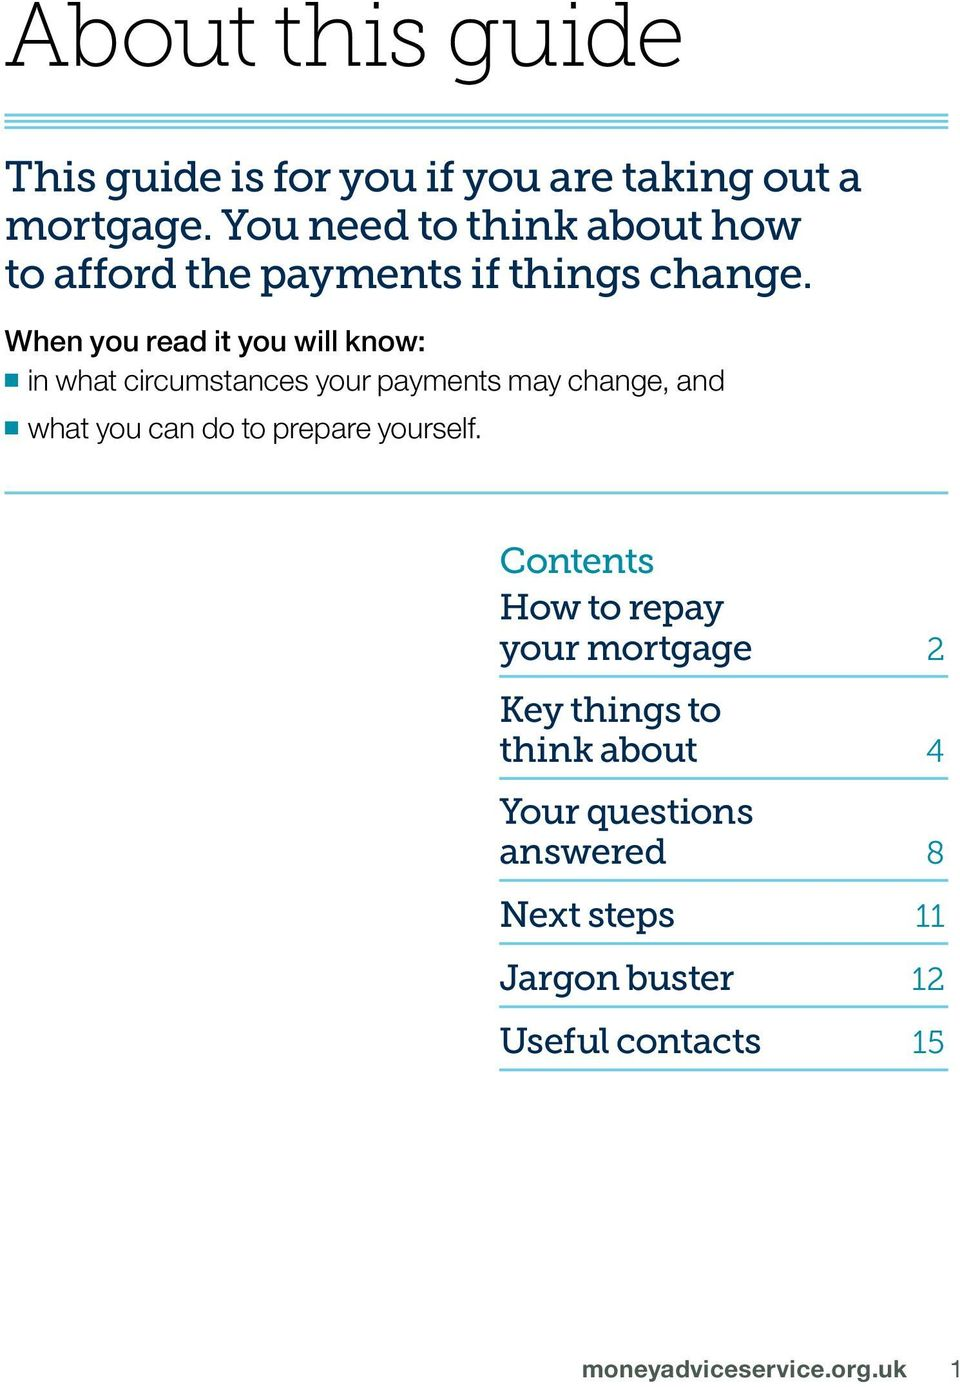 When you read it you will know: in what circumstances your payments may change, and what you can do to